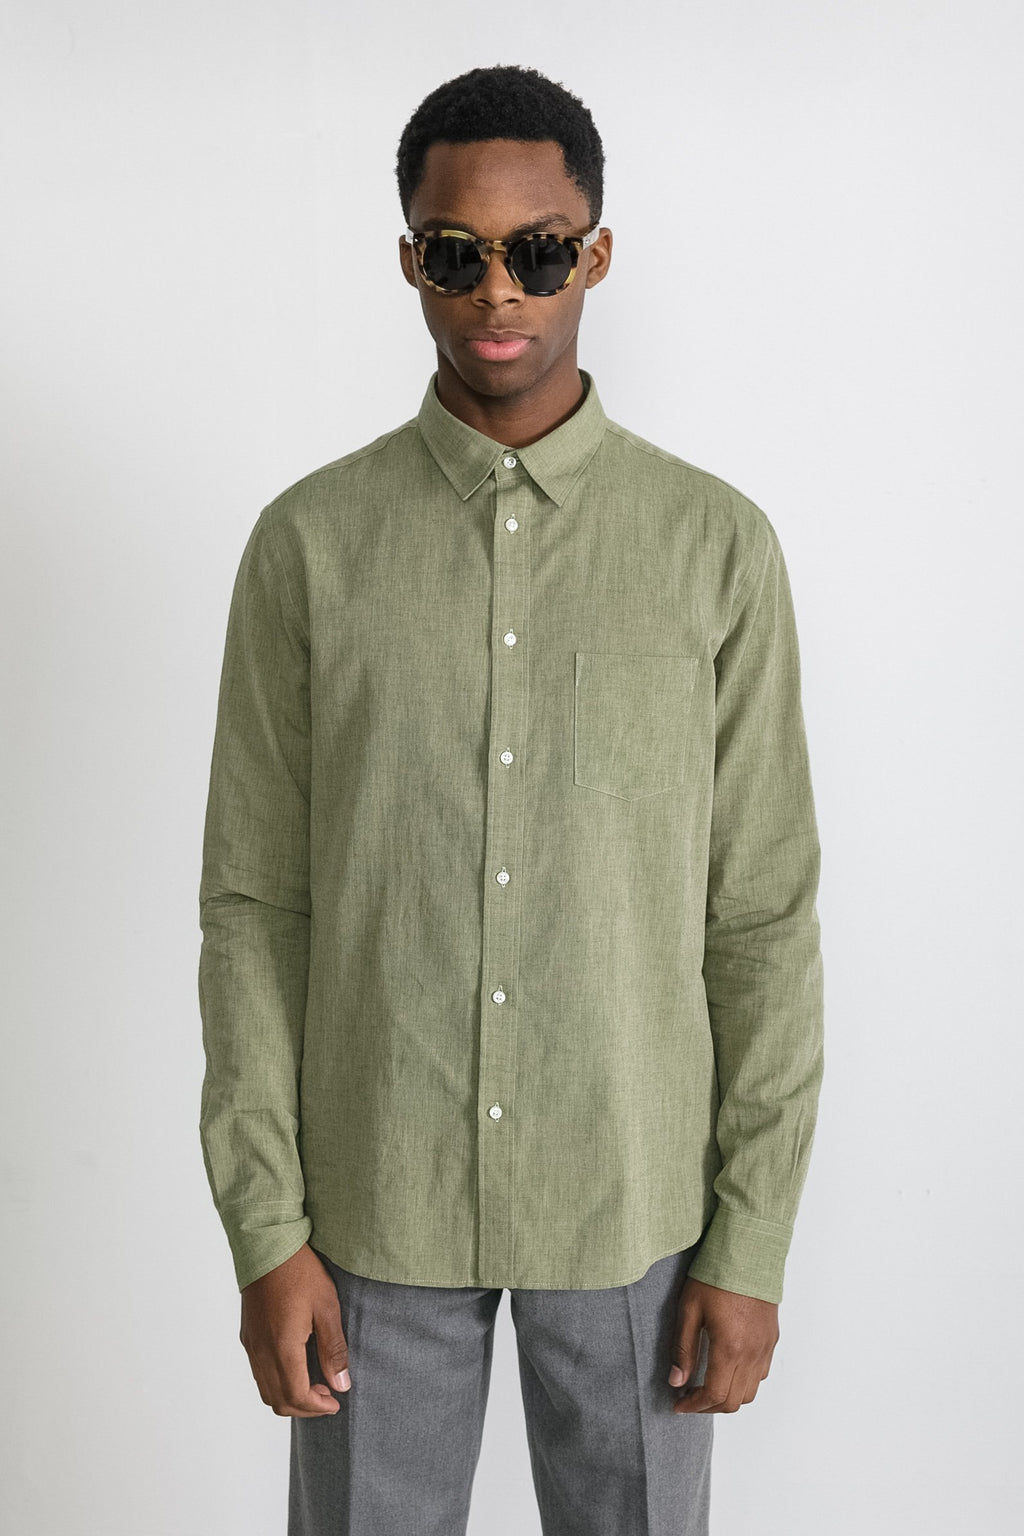 japanese-natural-chambray-in-green 01